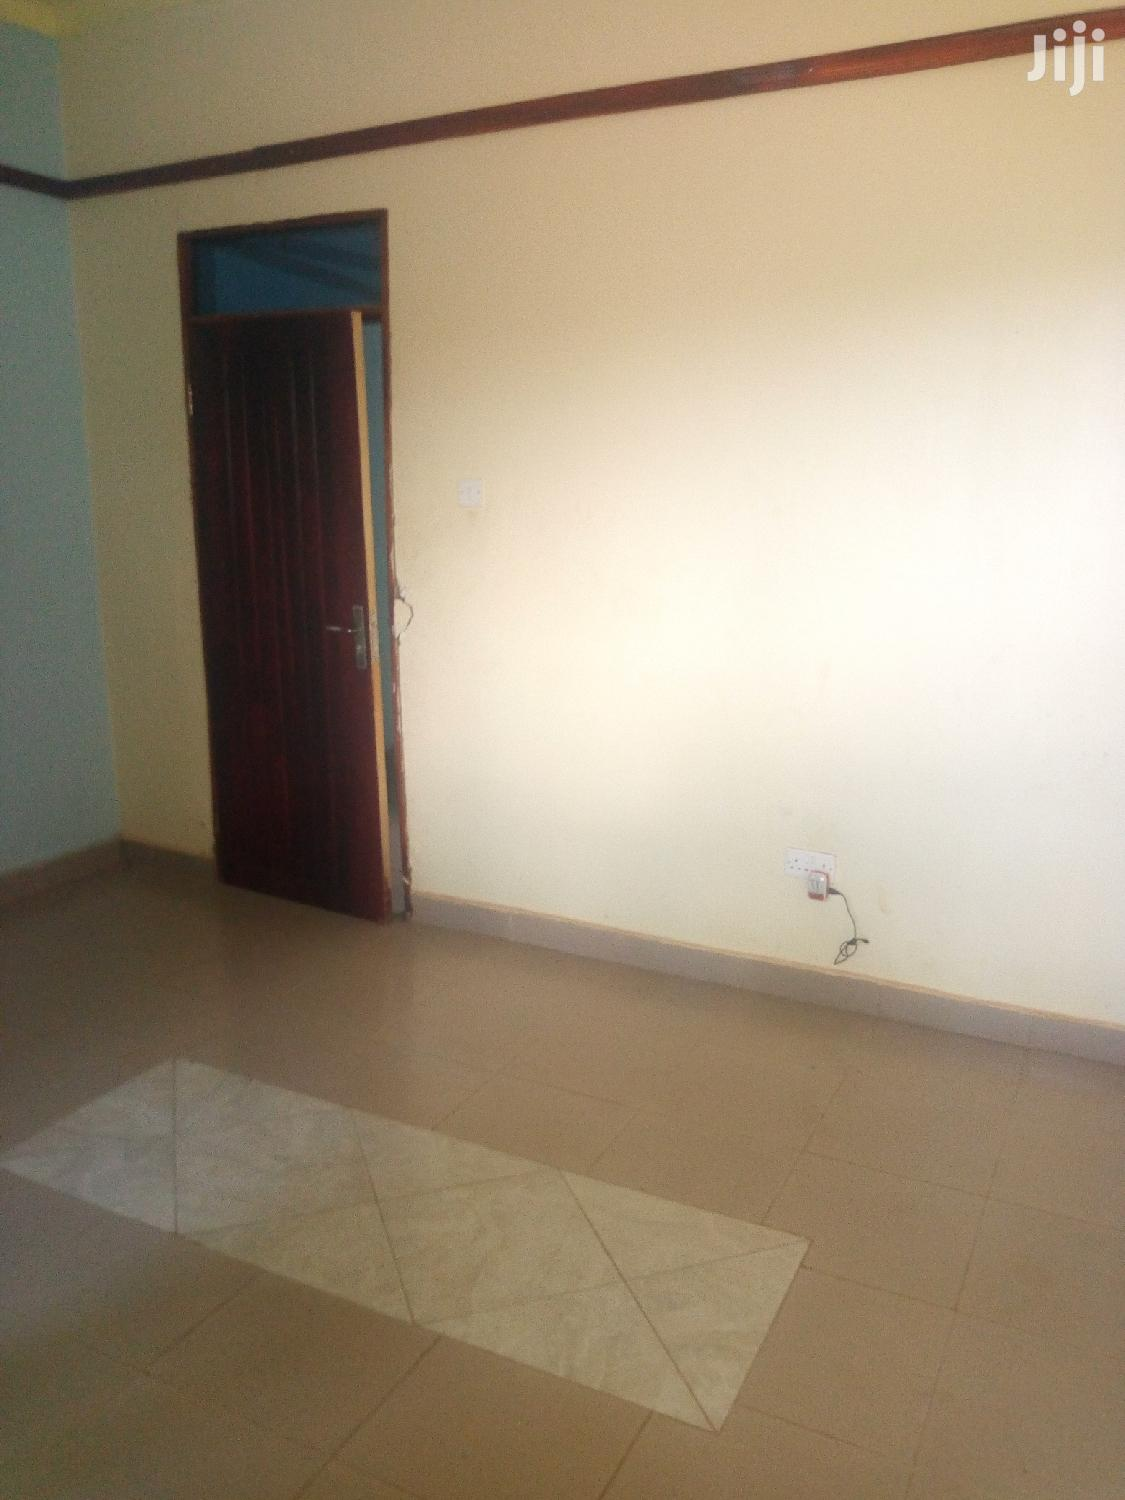 Double Room House In Namugongo For Rent | Houses & Apartments For Rent for sale in Kampala, Central Region, Uganda